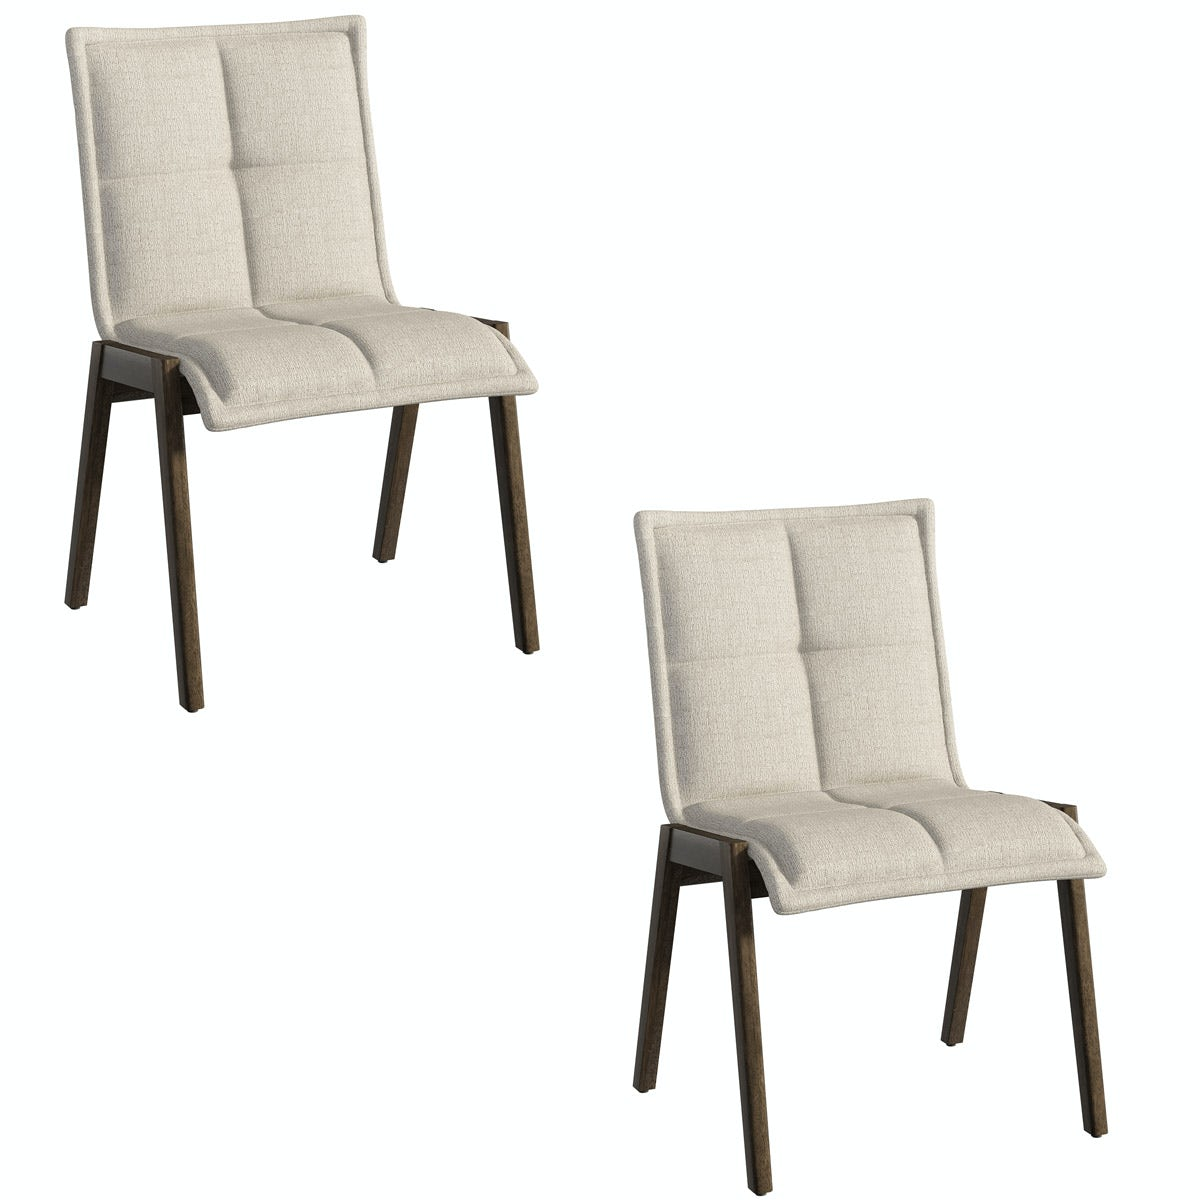 Hadley Walnut and Beige Pair of Dining Chairs